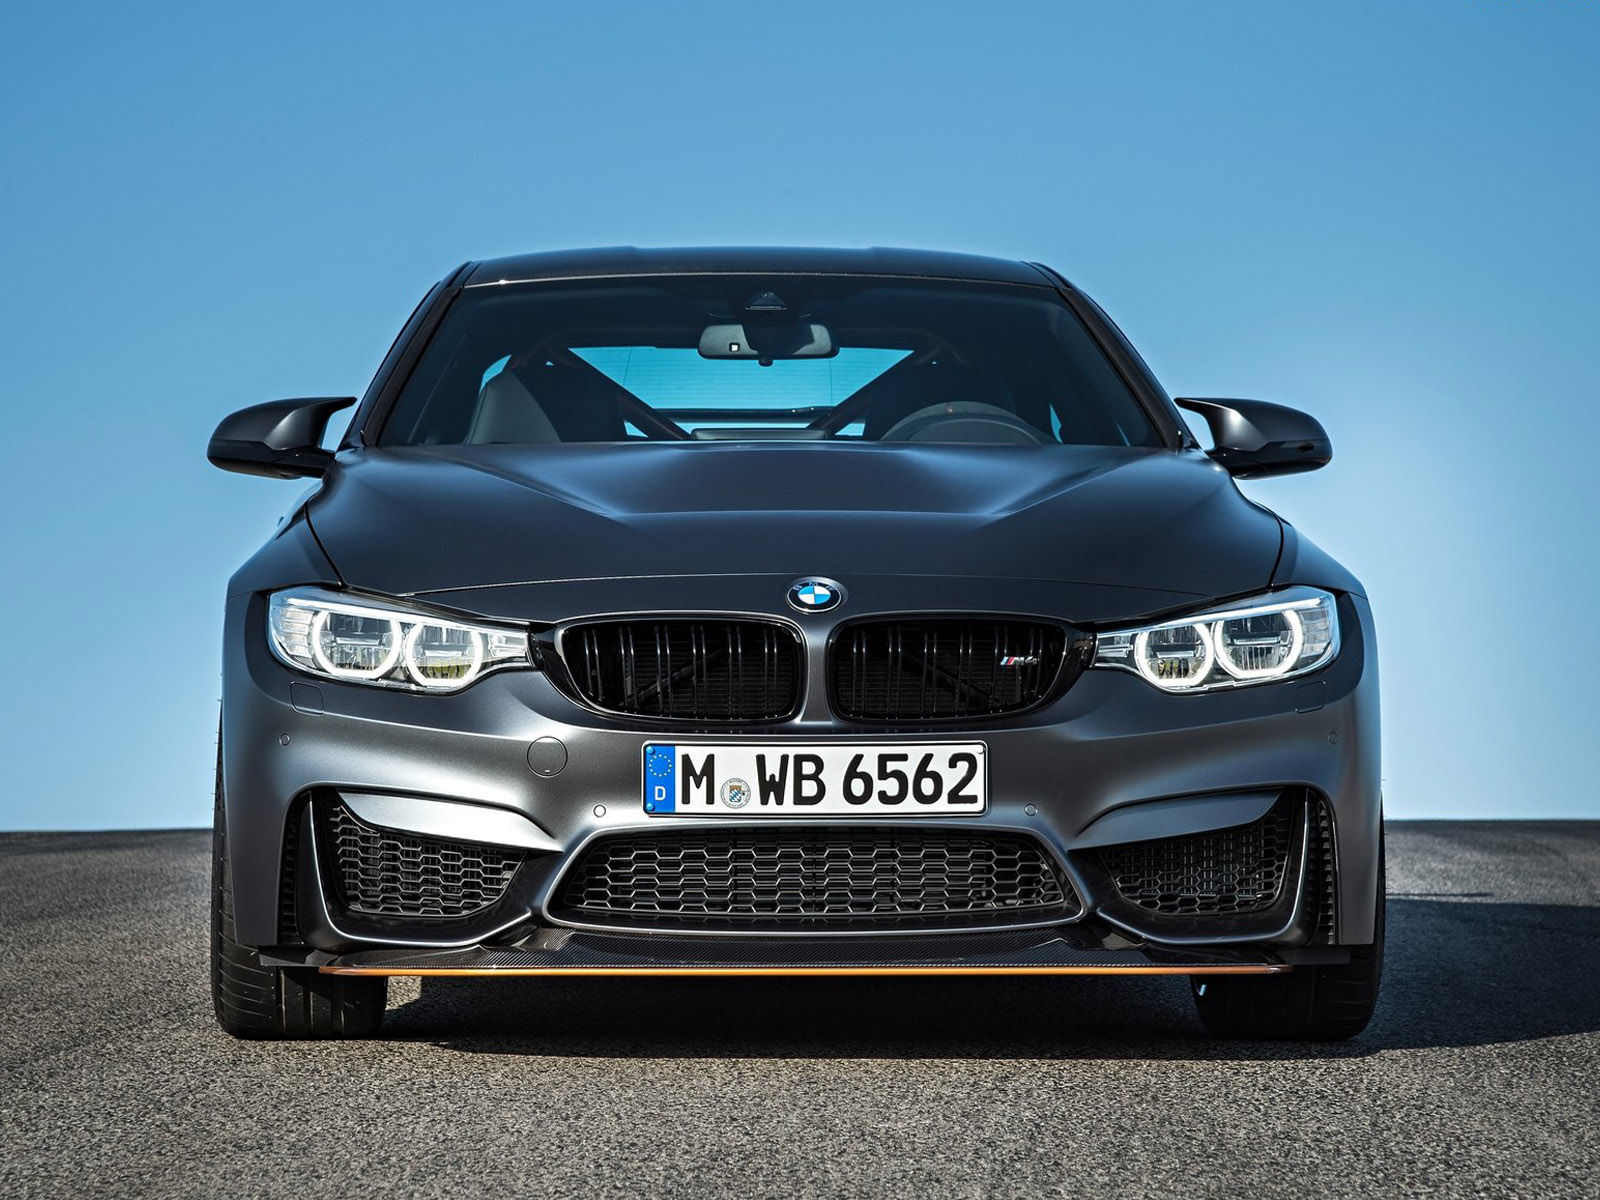 m4 bmw gts background wallpapers hd desktop widescreen